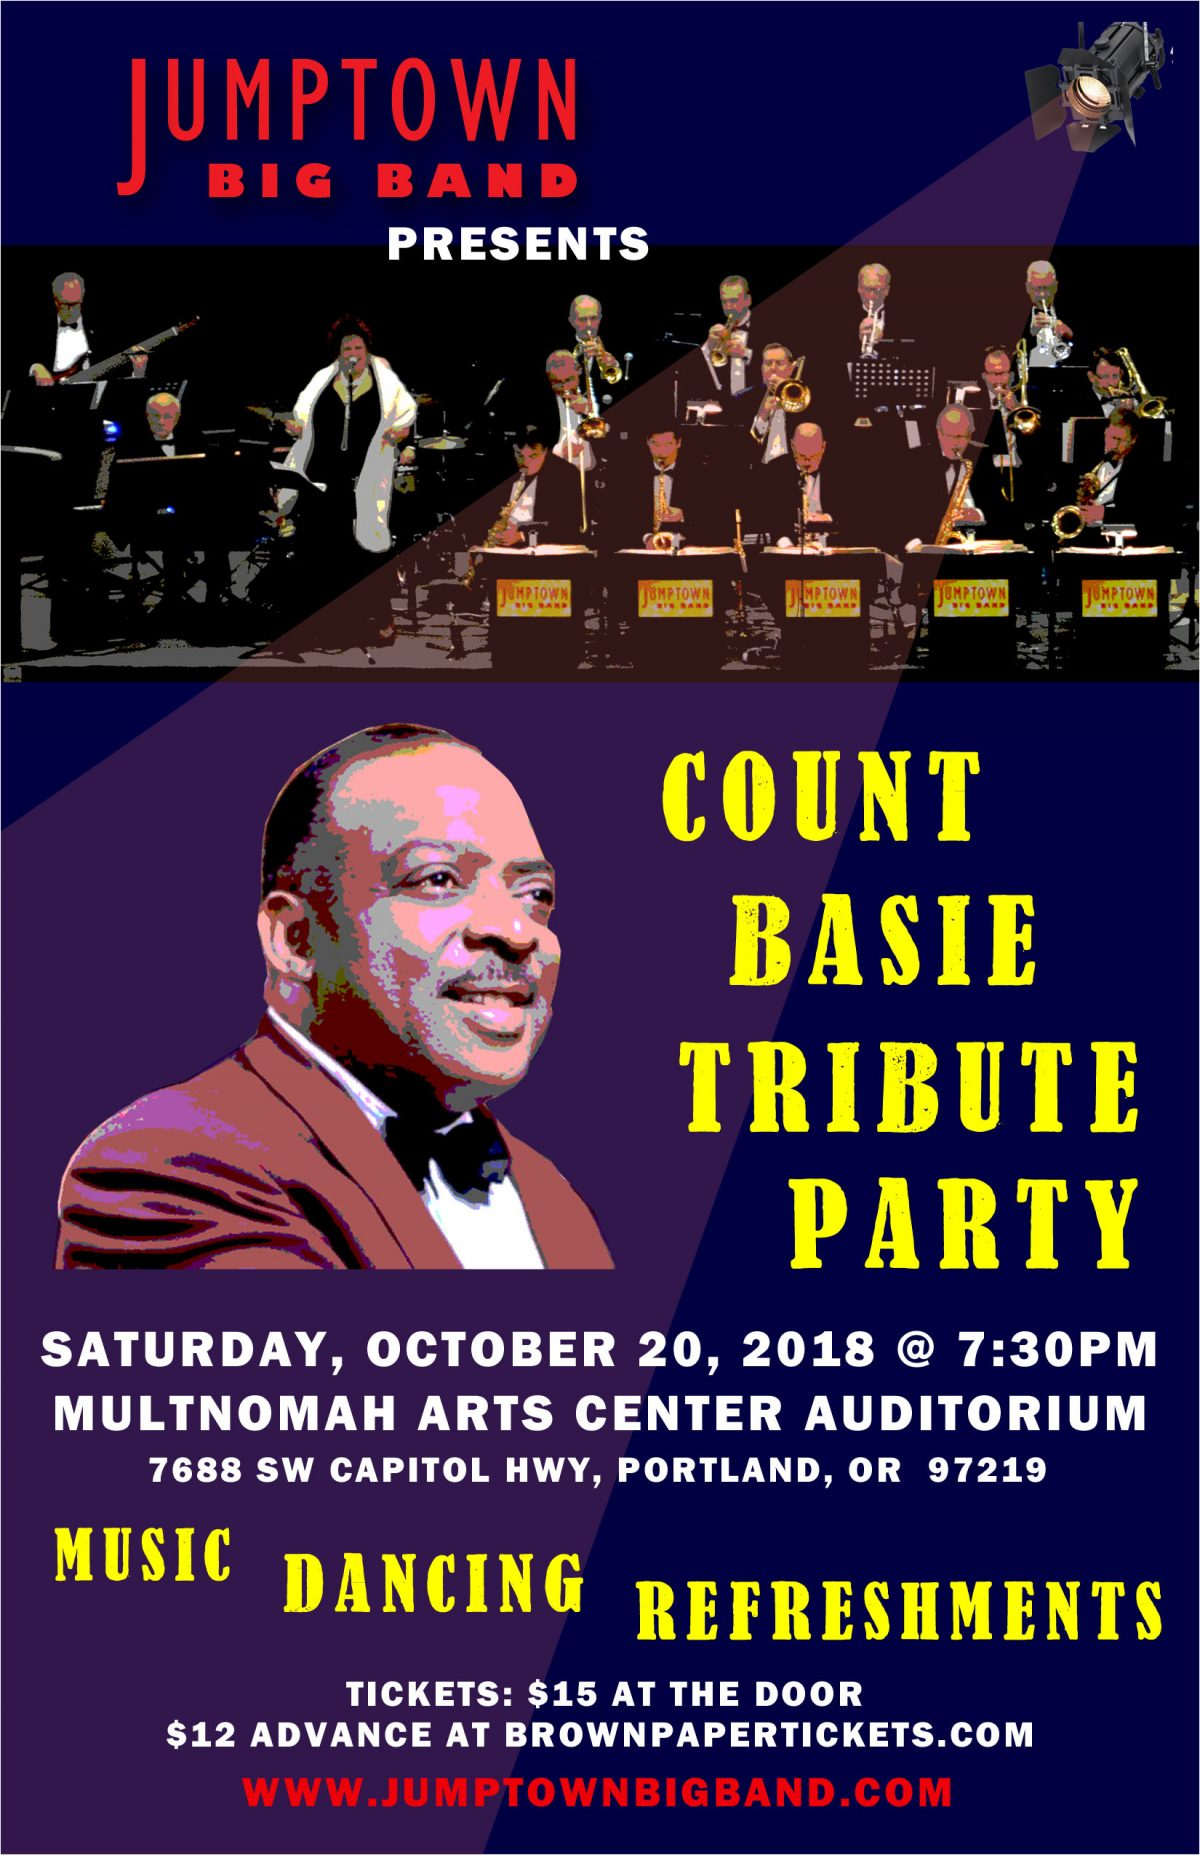 October 20, 2018 – Count Basie Tribute Party